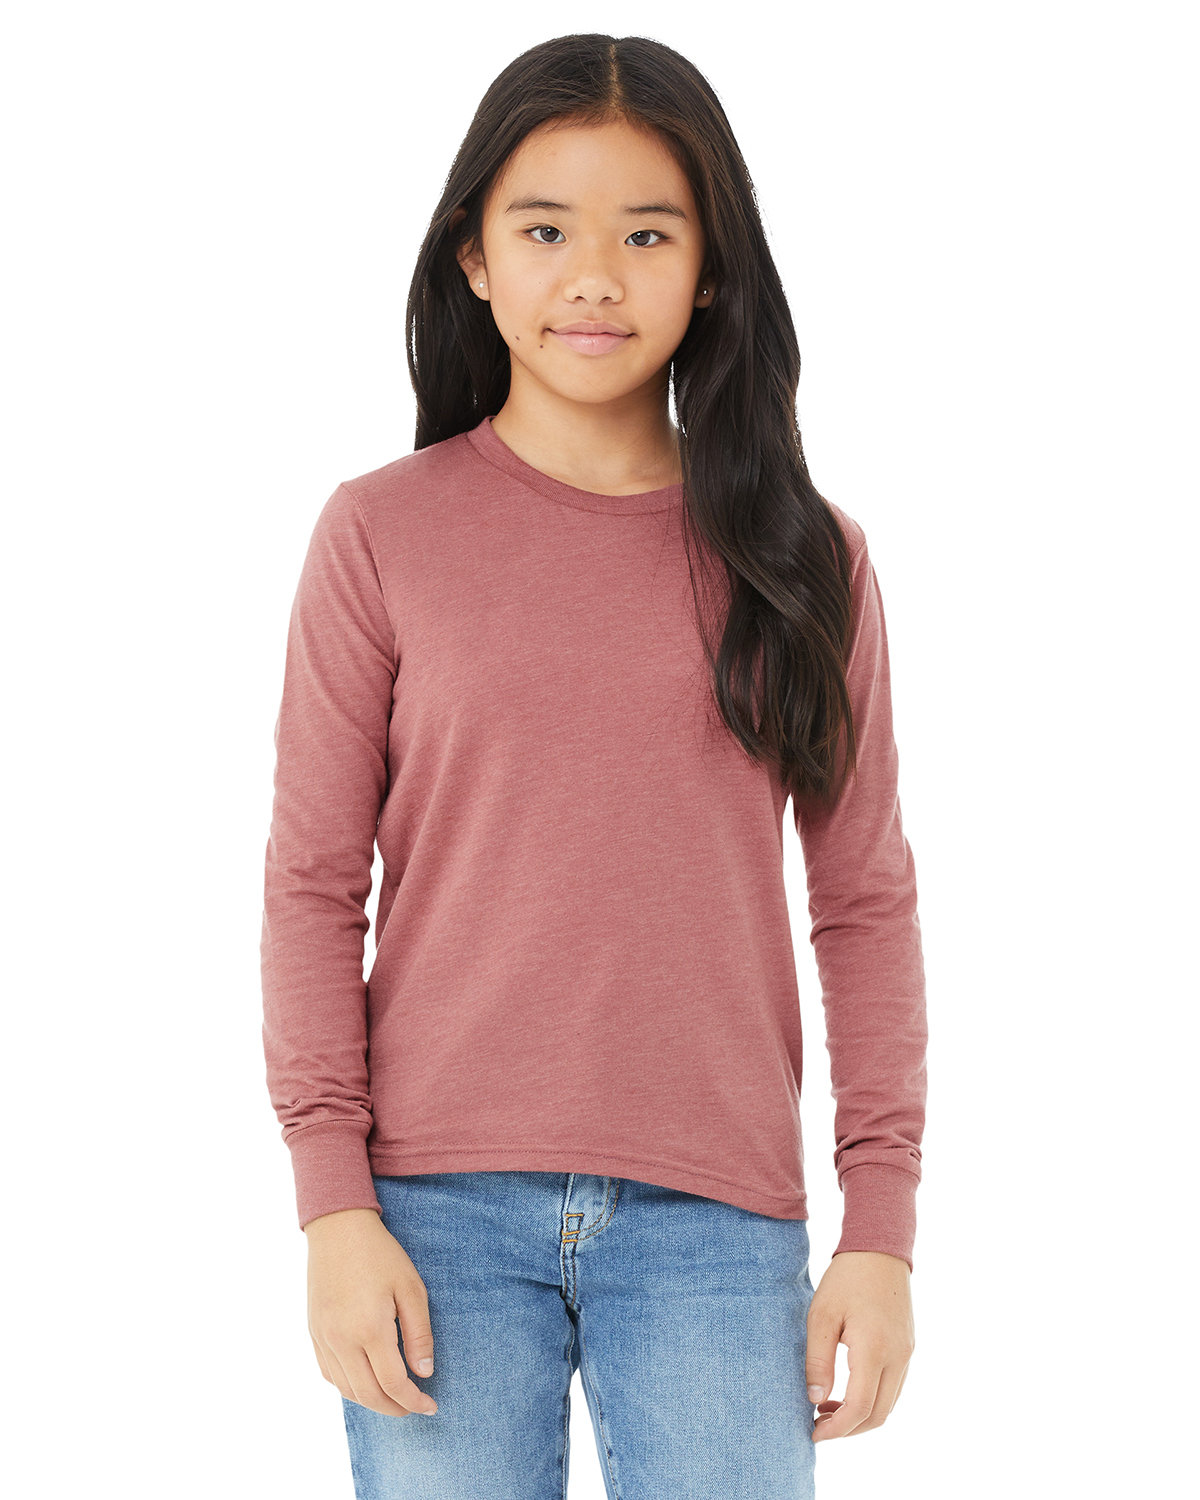 Bella + Canvas Youth Jersey Long-Sleeve T-Shirt HEATHER MAUVE